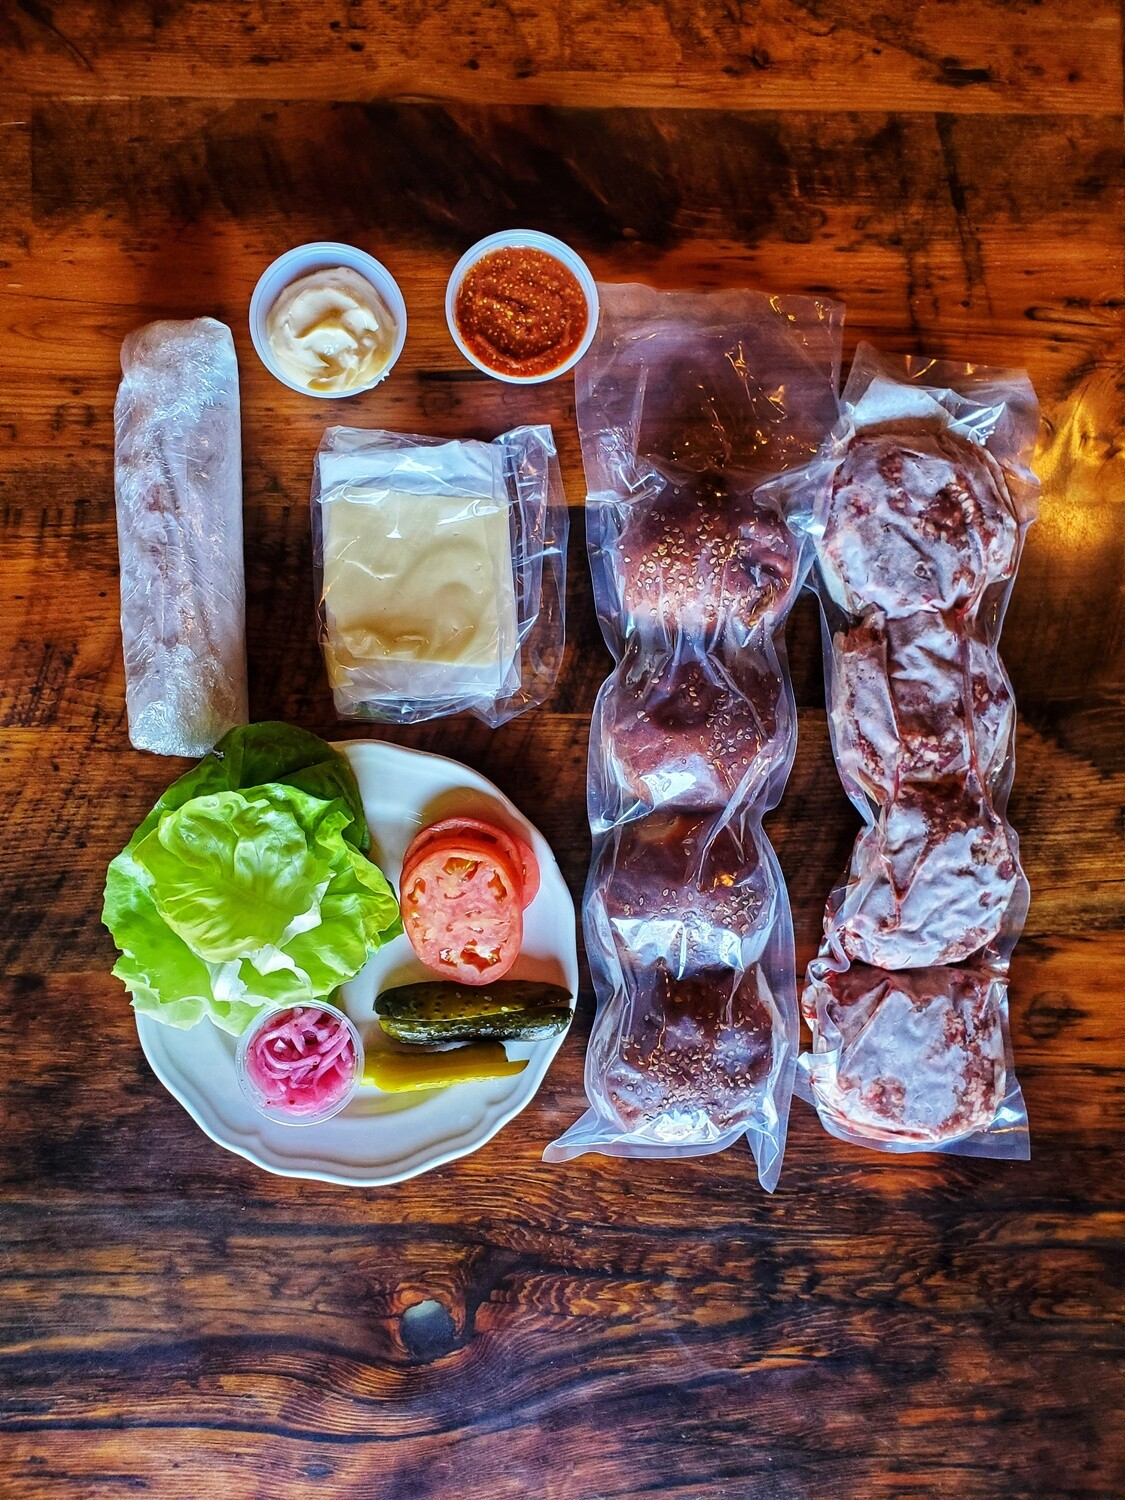 The Burger Meal (For 4)